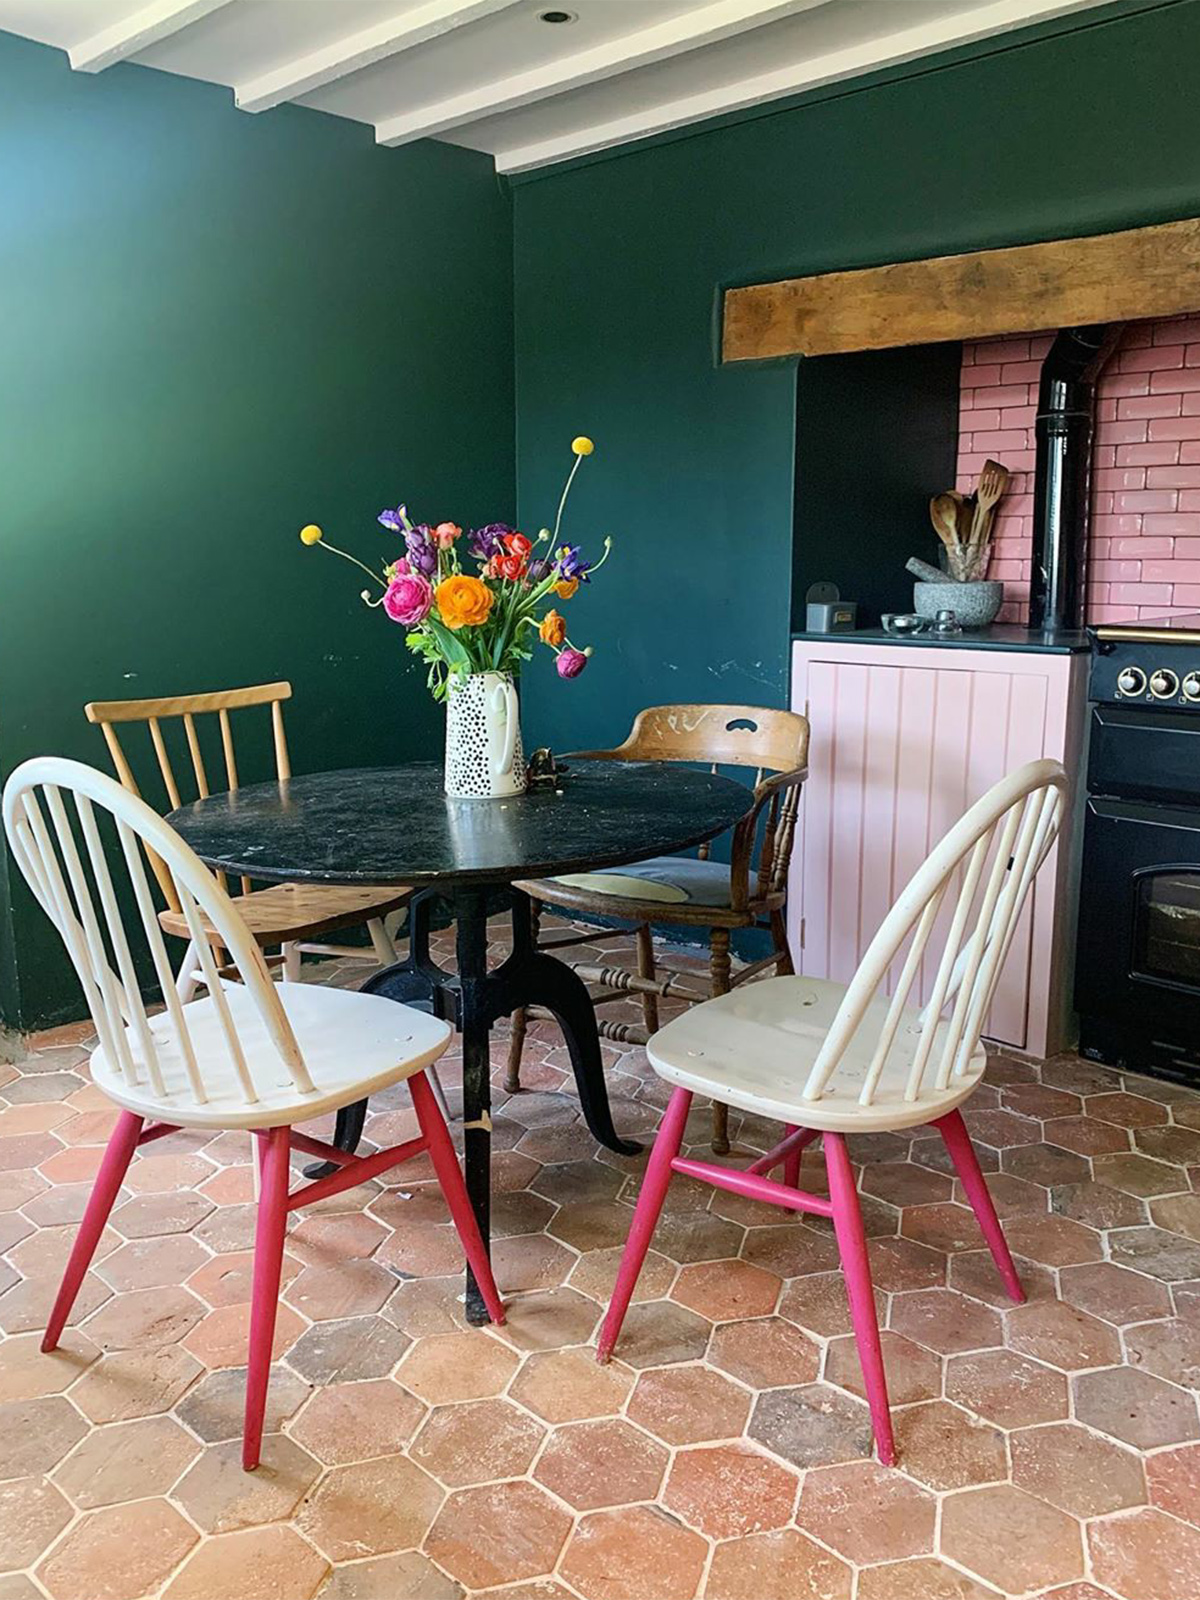 country kitchen in dark green with mid century modern ercol chairs and pink kitchen tiles. Reclaimed hexagon terracotta floor tiles complete the modern country look